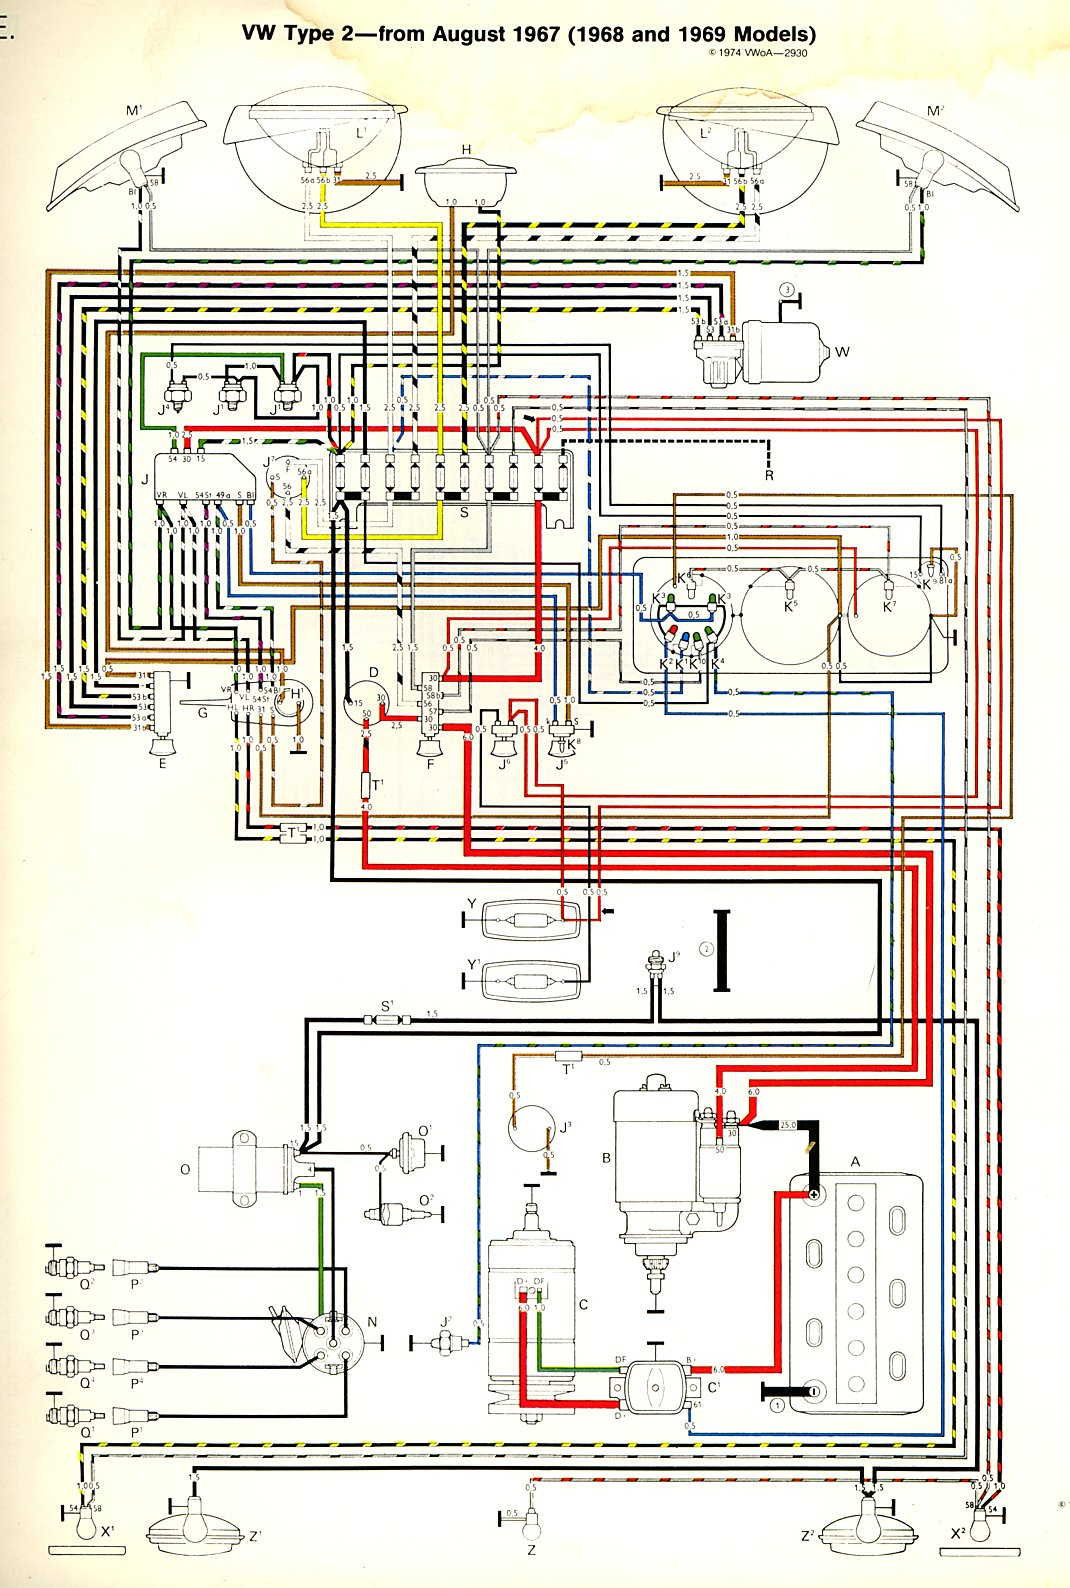 baybus_6869a 1968 69 bus wiring diagram thegoldenbug com 1971 vw bus wiring diagram at crackthecode.co